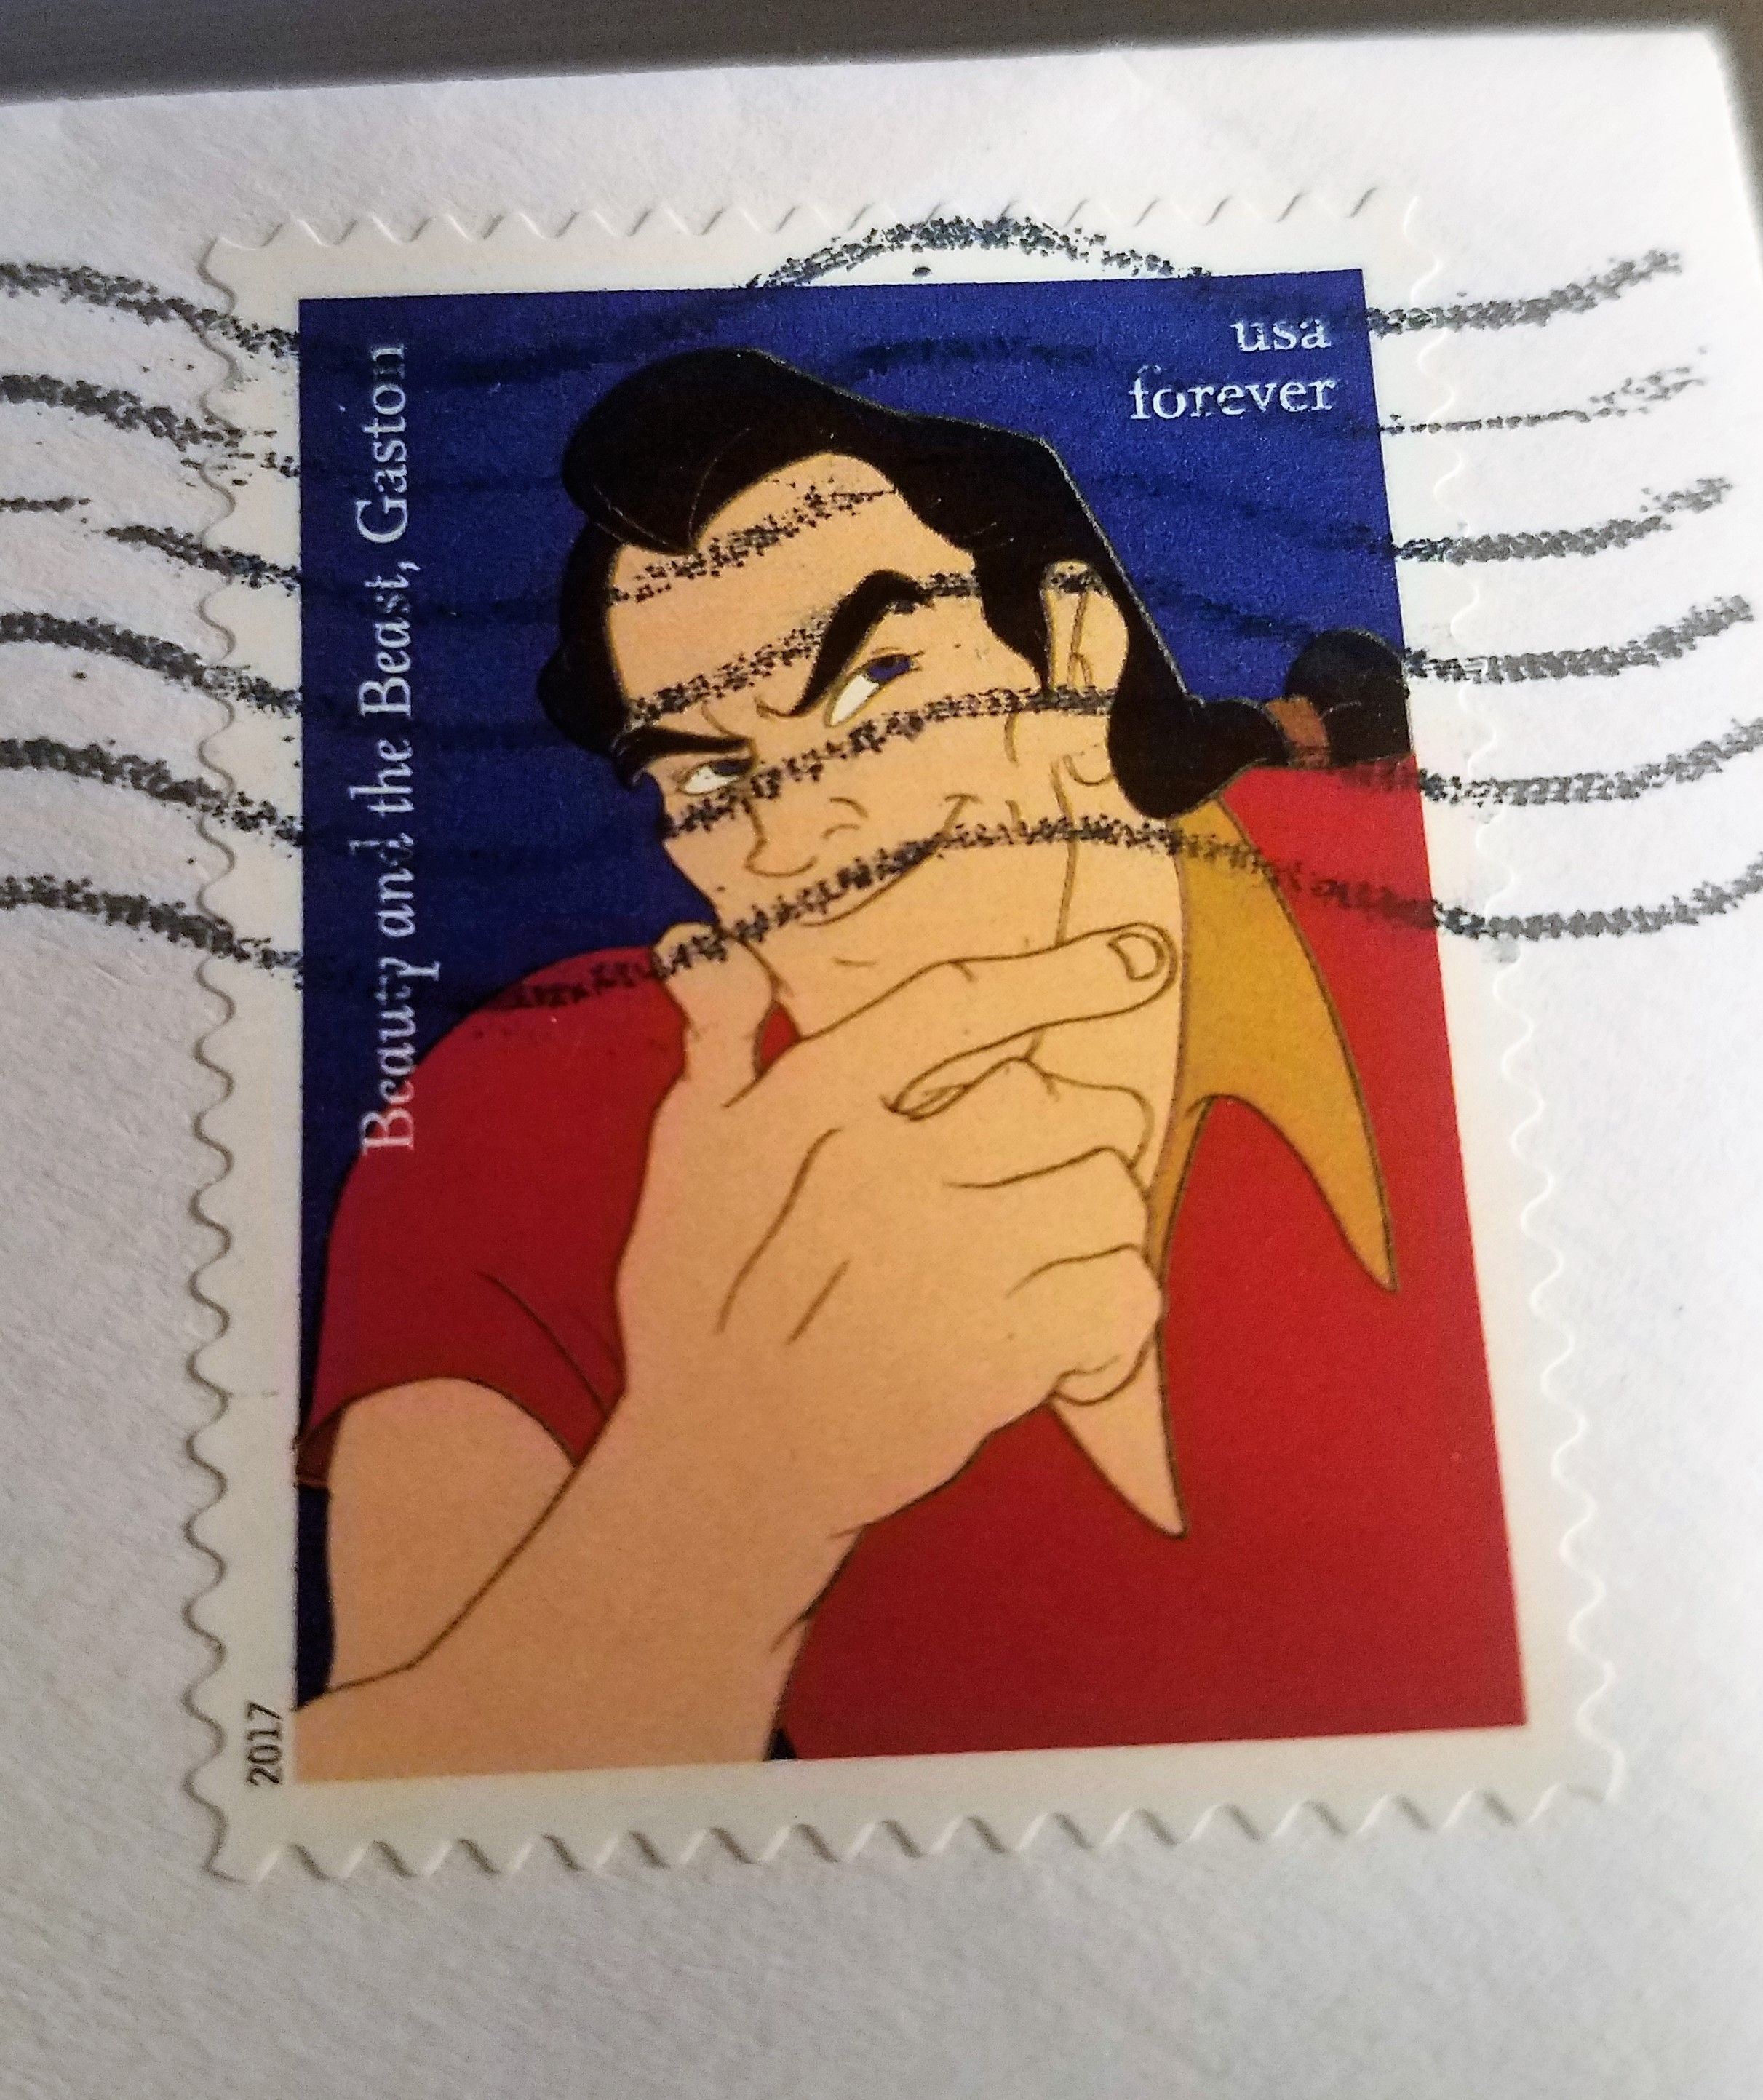 When your mail looks this good, it's hard to recycle! #LivingtheDisneylife